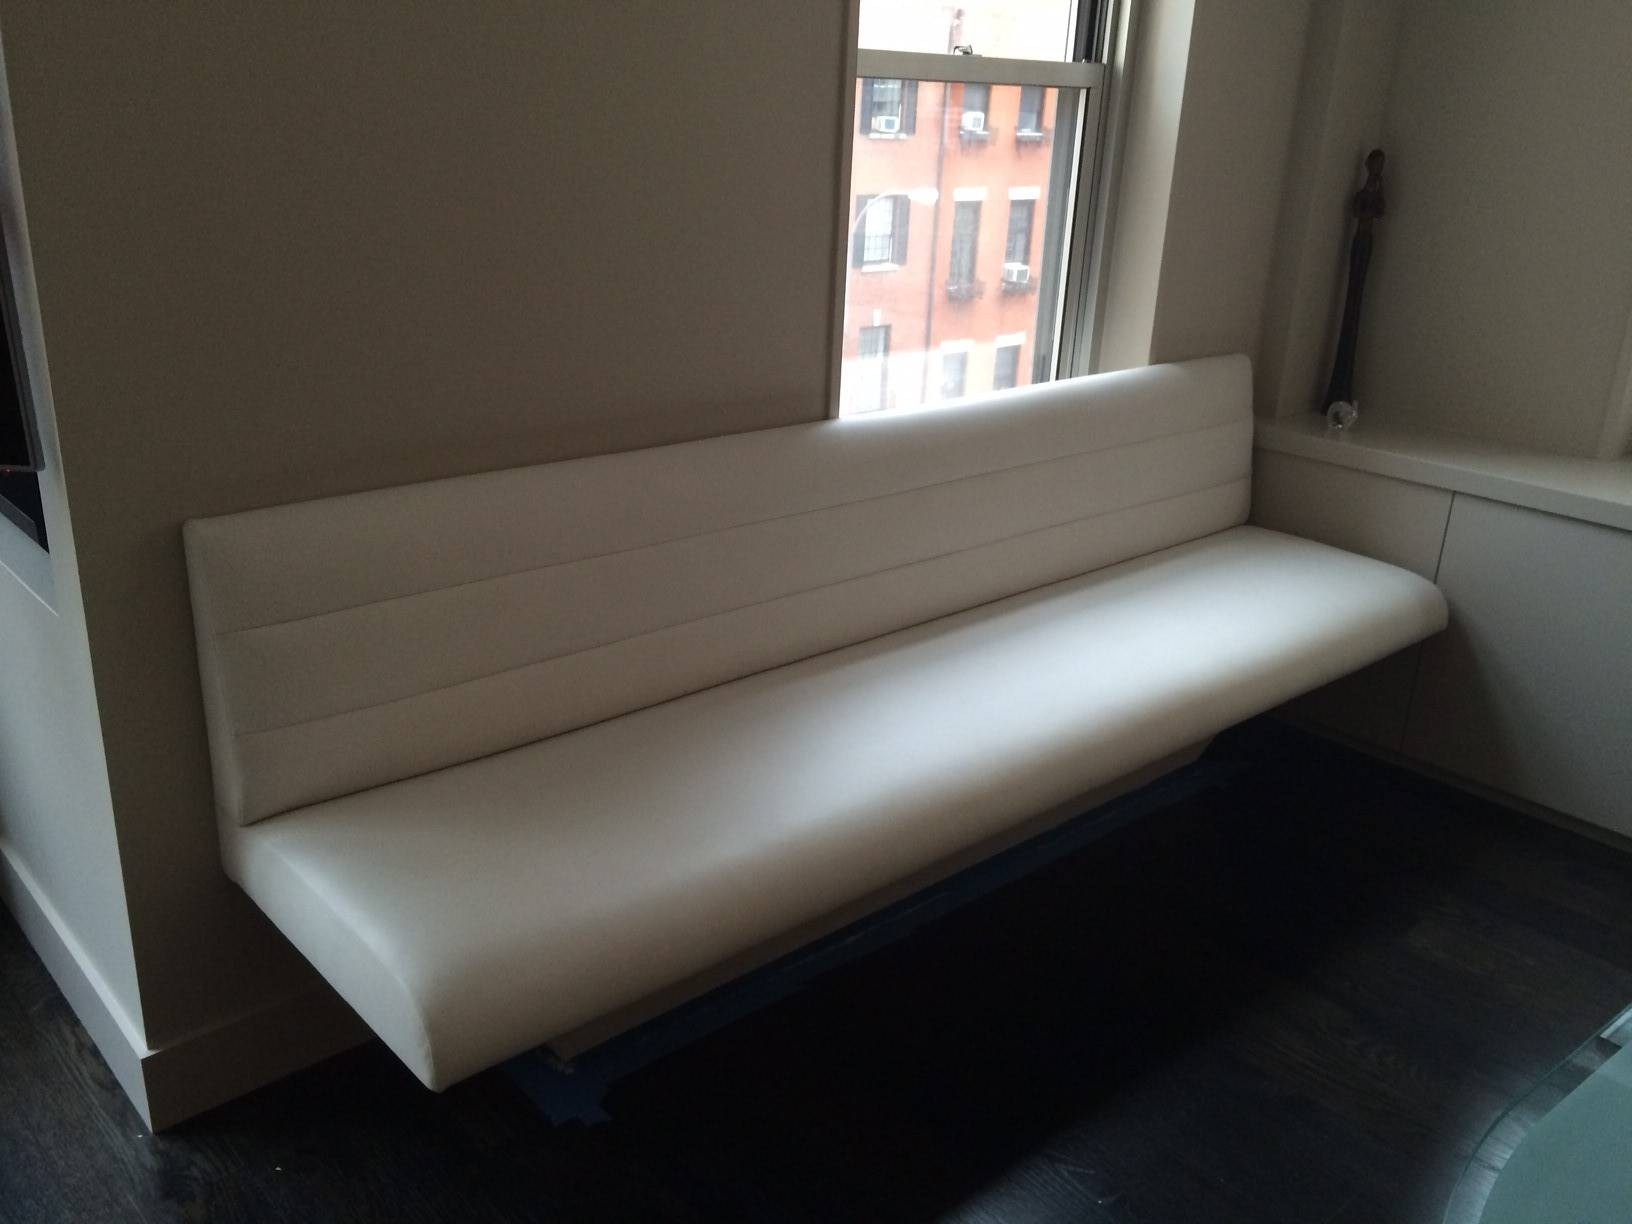 Sofa Doctor Nyc With Design Hd Photos 34799 | Kengire regarding Custom Sofas Nyc (Image 22 of 30)